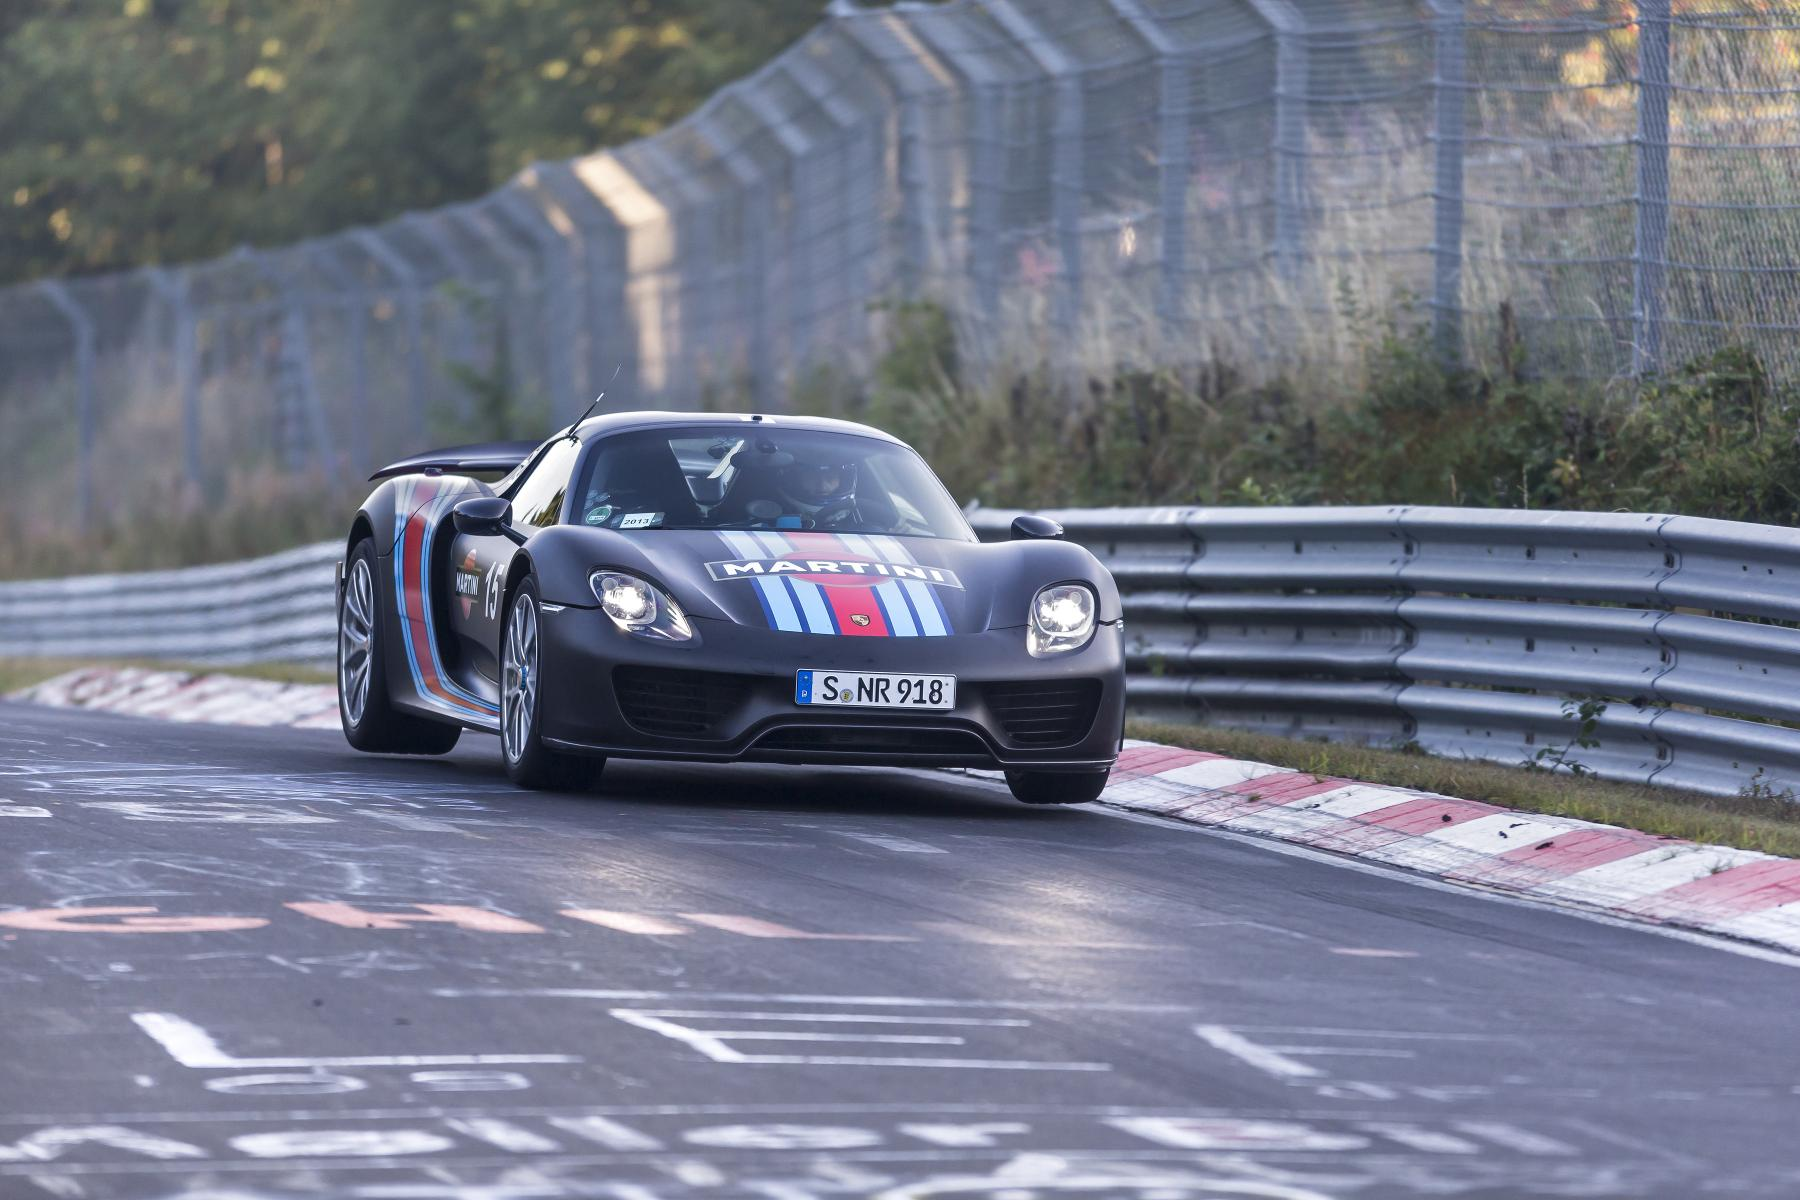 Porsche S Lap Record Looks To Be In Jeopardy